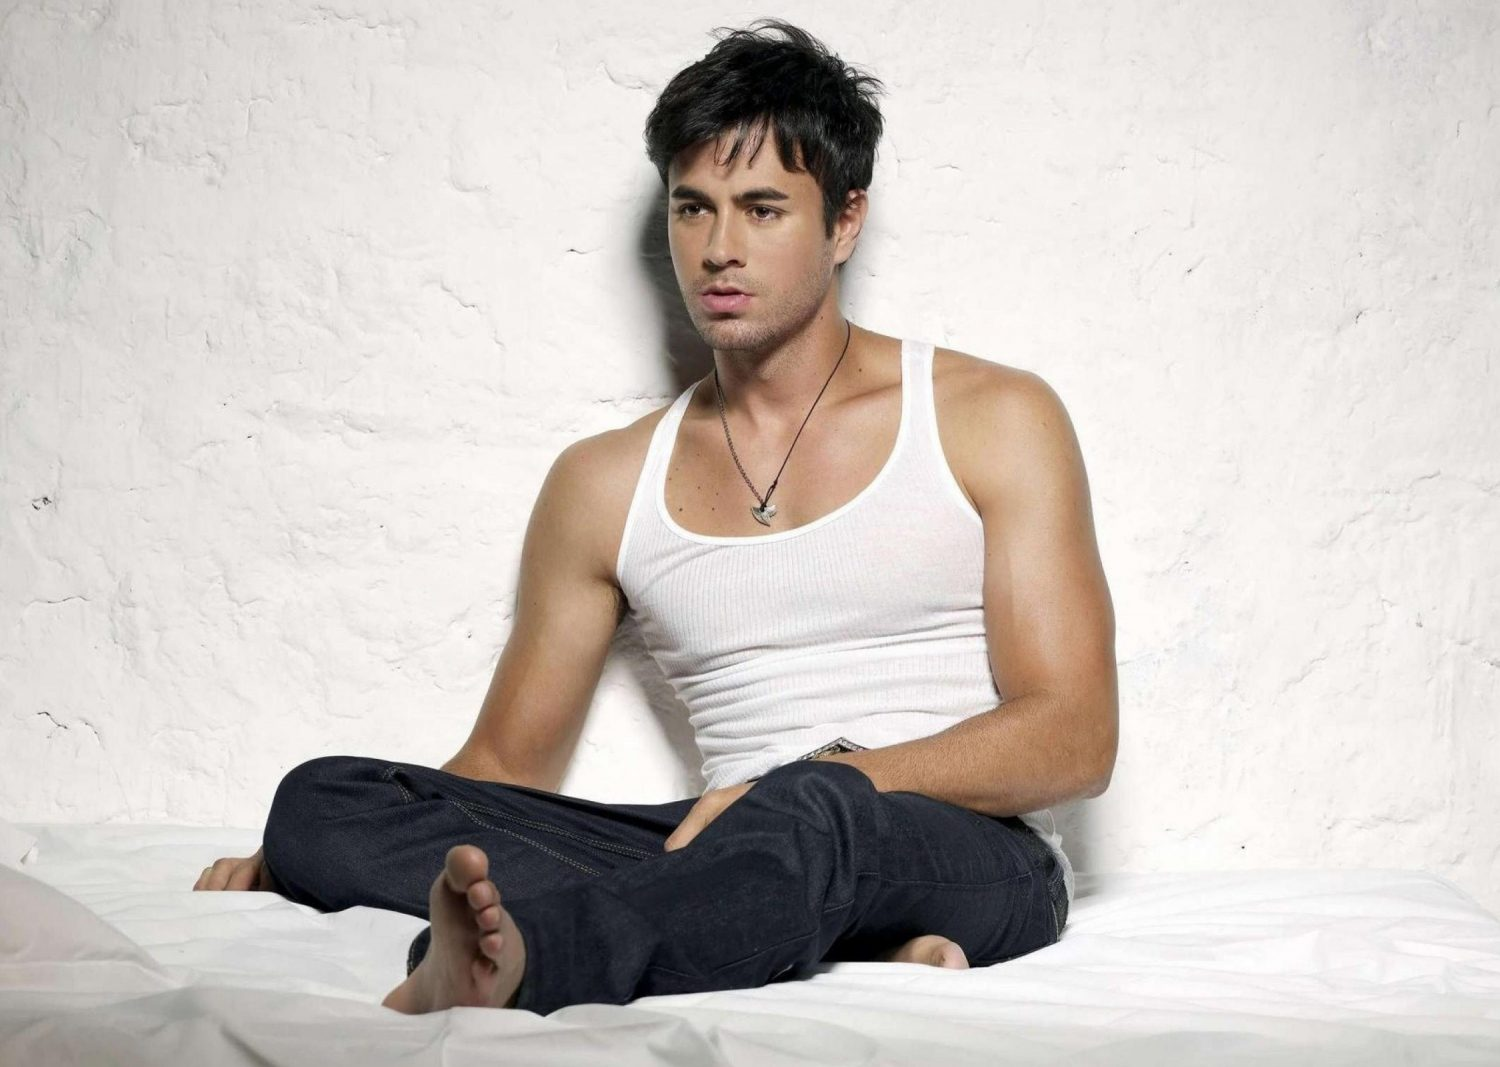 Enrique Iglesias in a tank top and white background